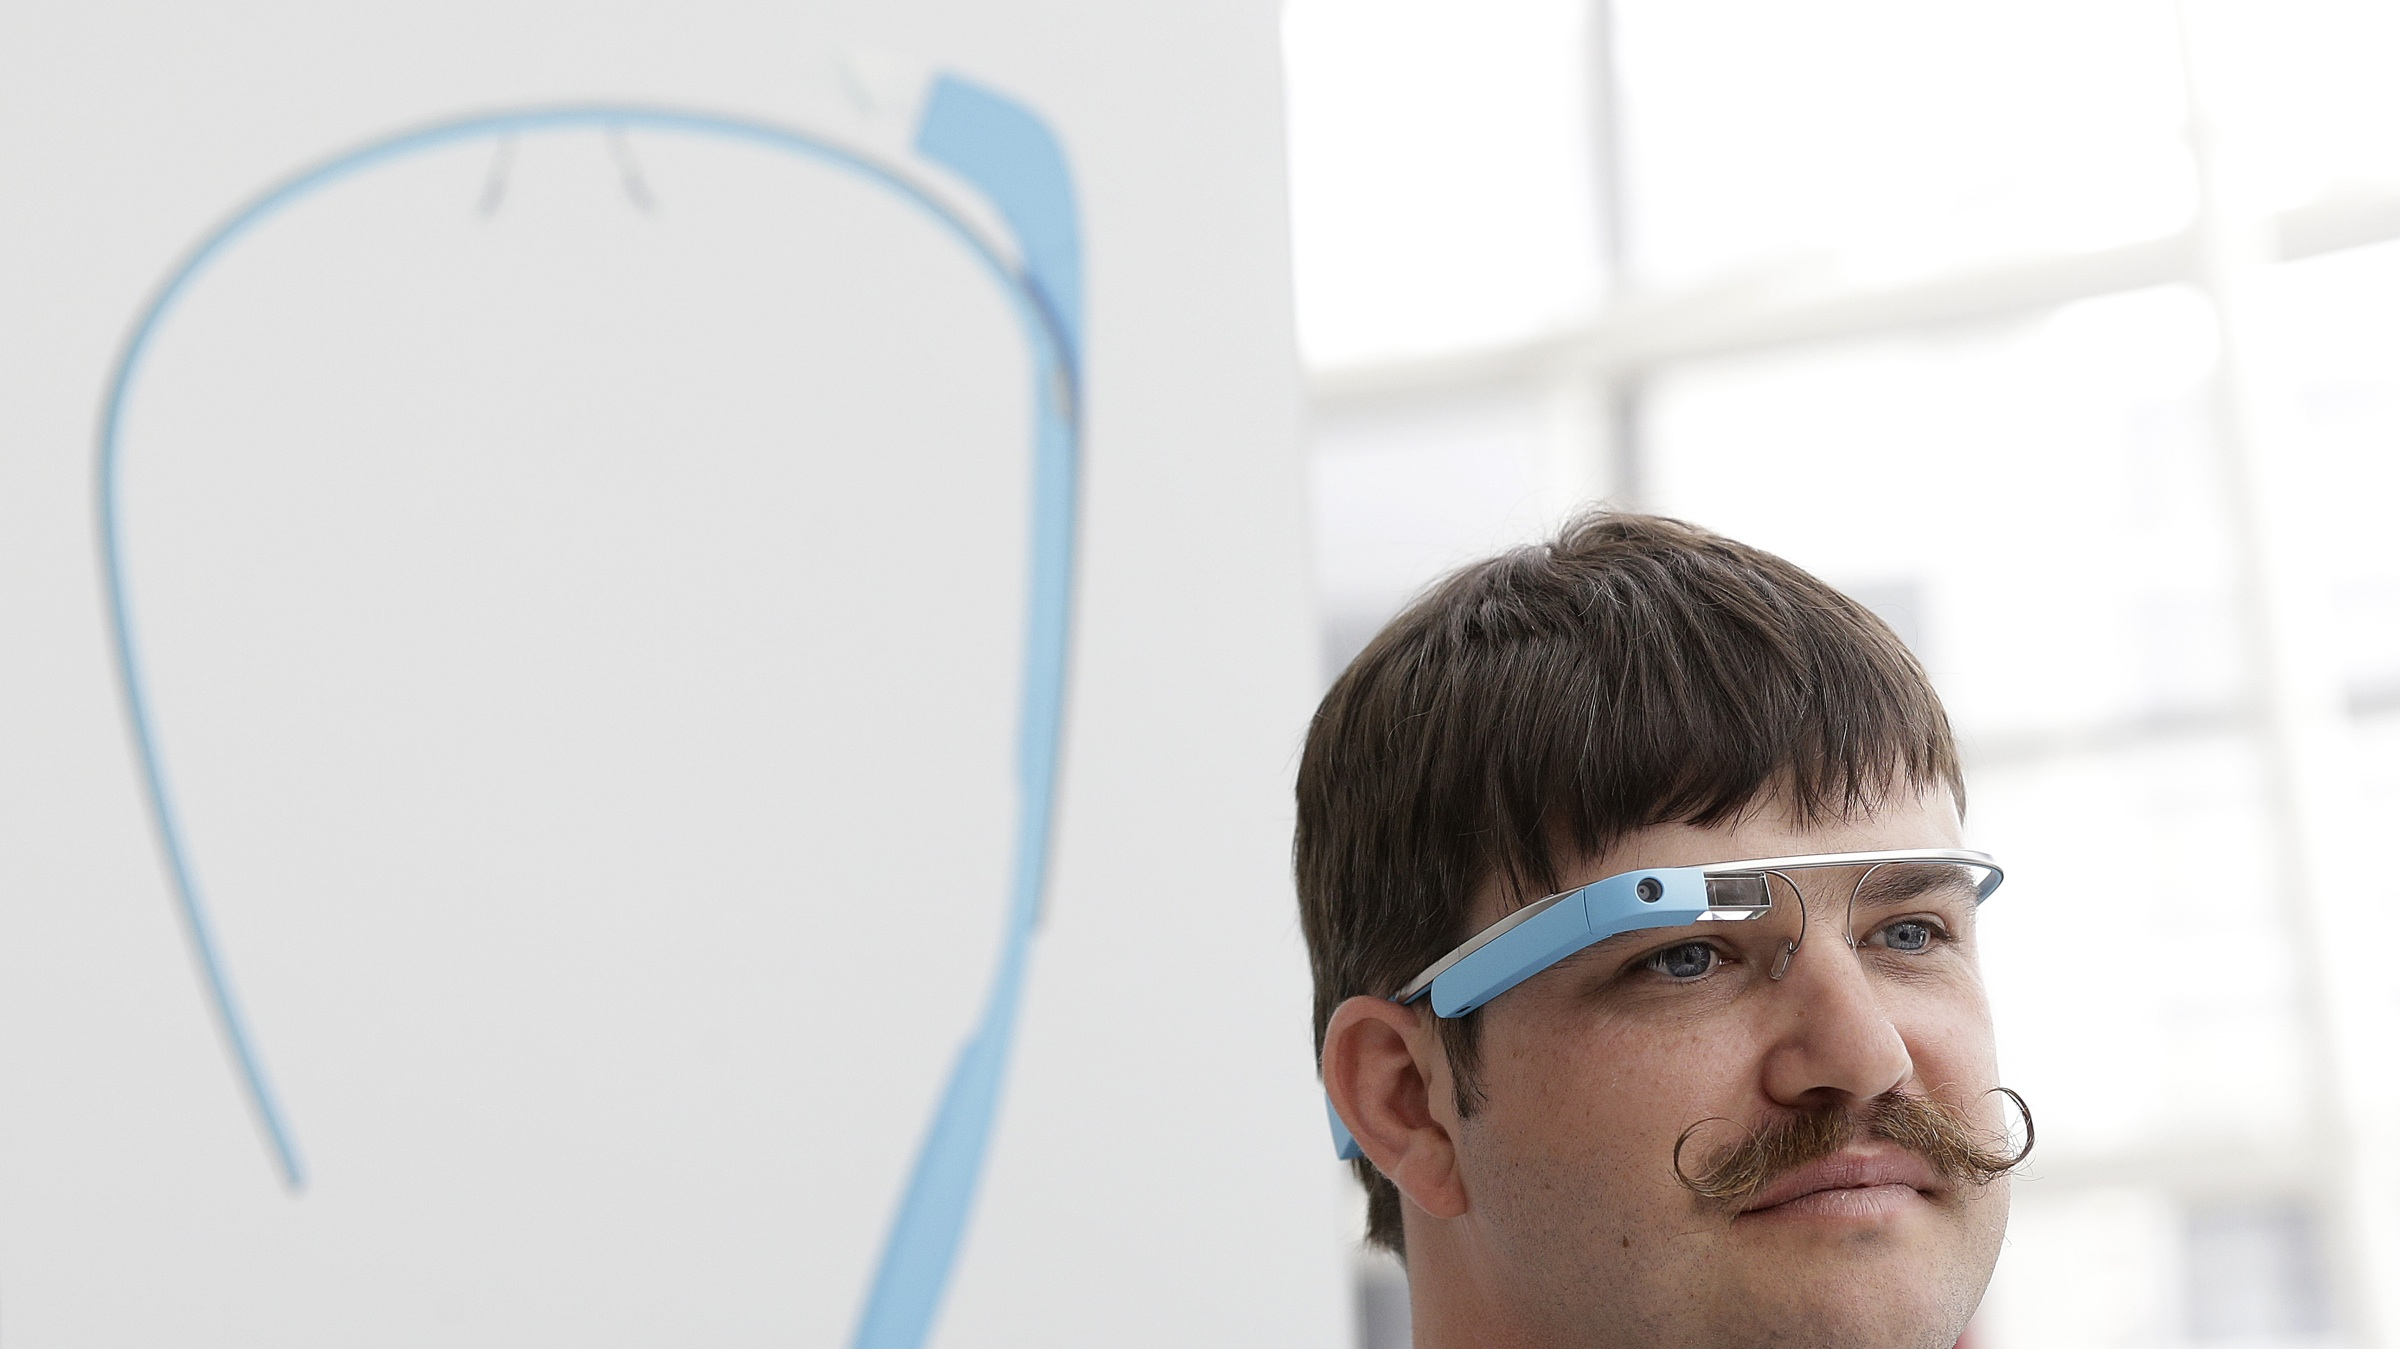 Engineer Ian McKellar wears a pair of Google Glass at a booth at Google I/O 2013 in San Francisco, Wednesday, May 15, 2013. (AP Photo/Jeff Chiu)